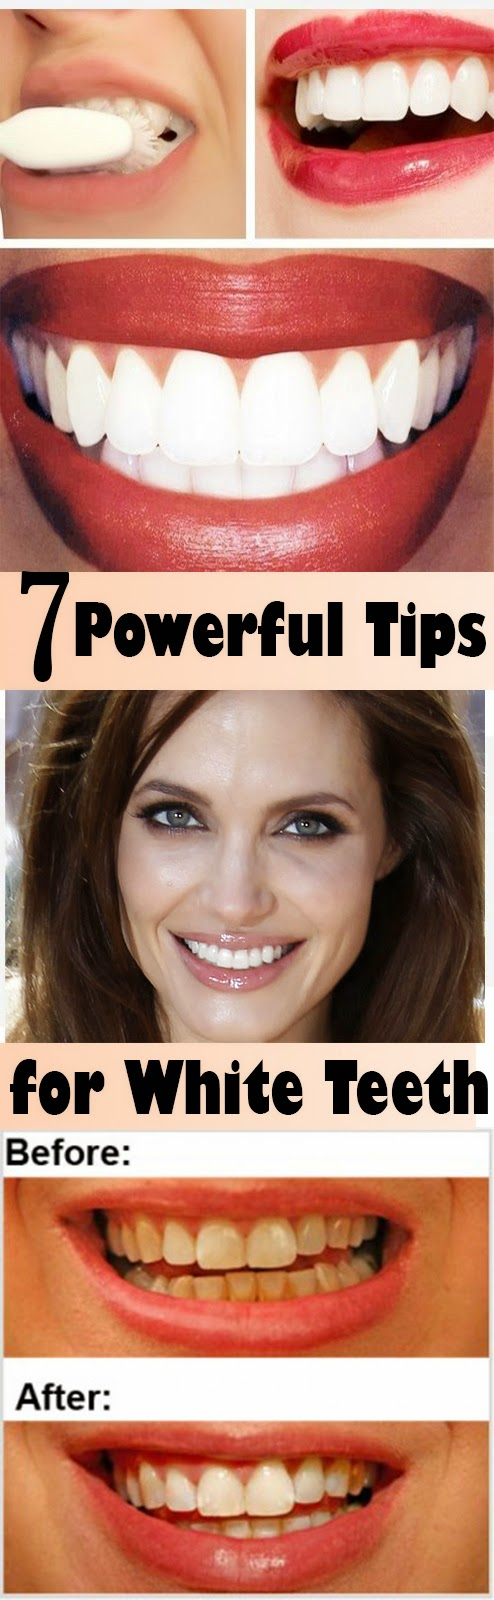 how to close a gap in your teeth naturally